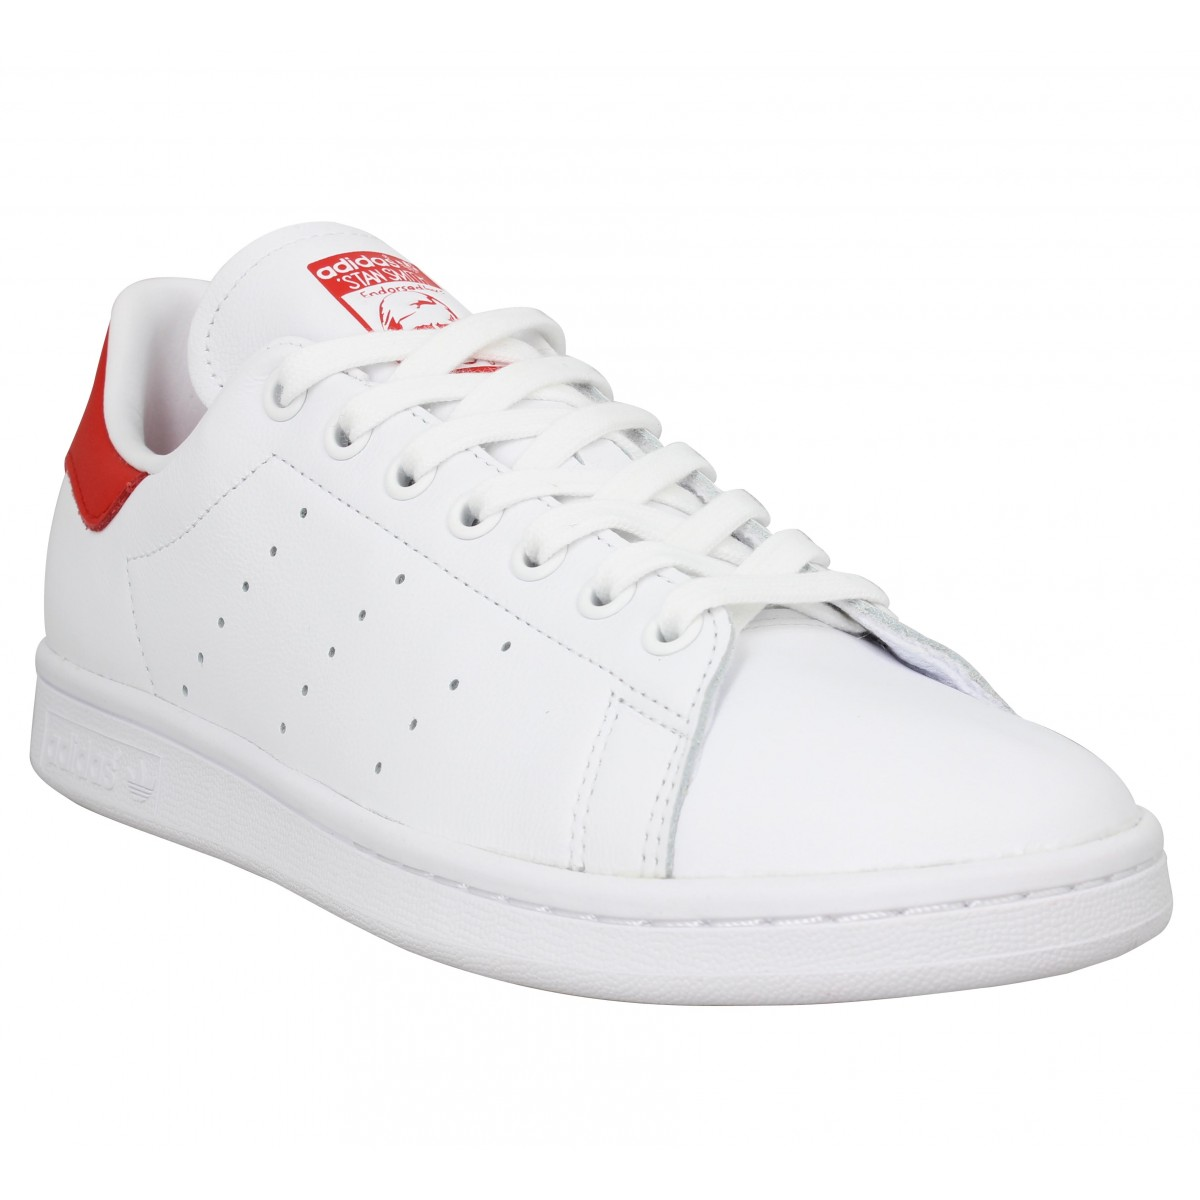 ADIDAS Stan Smith cuir Blanc Rouge